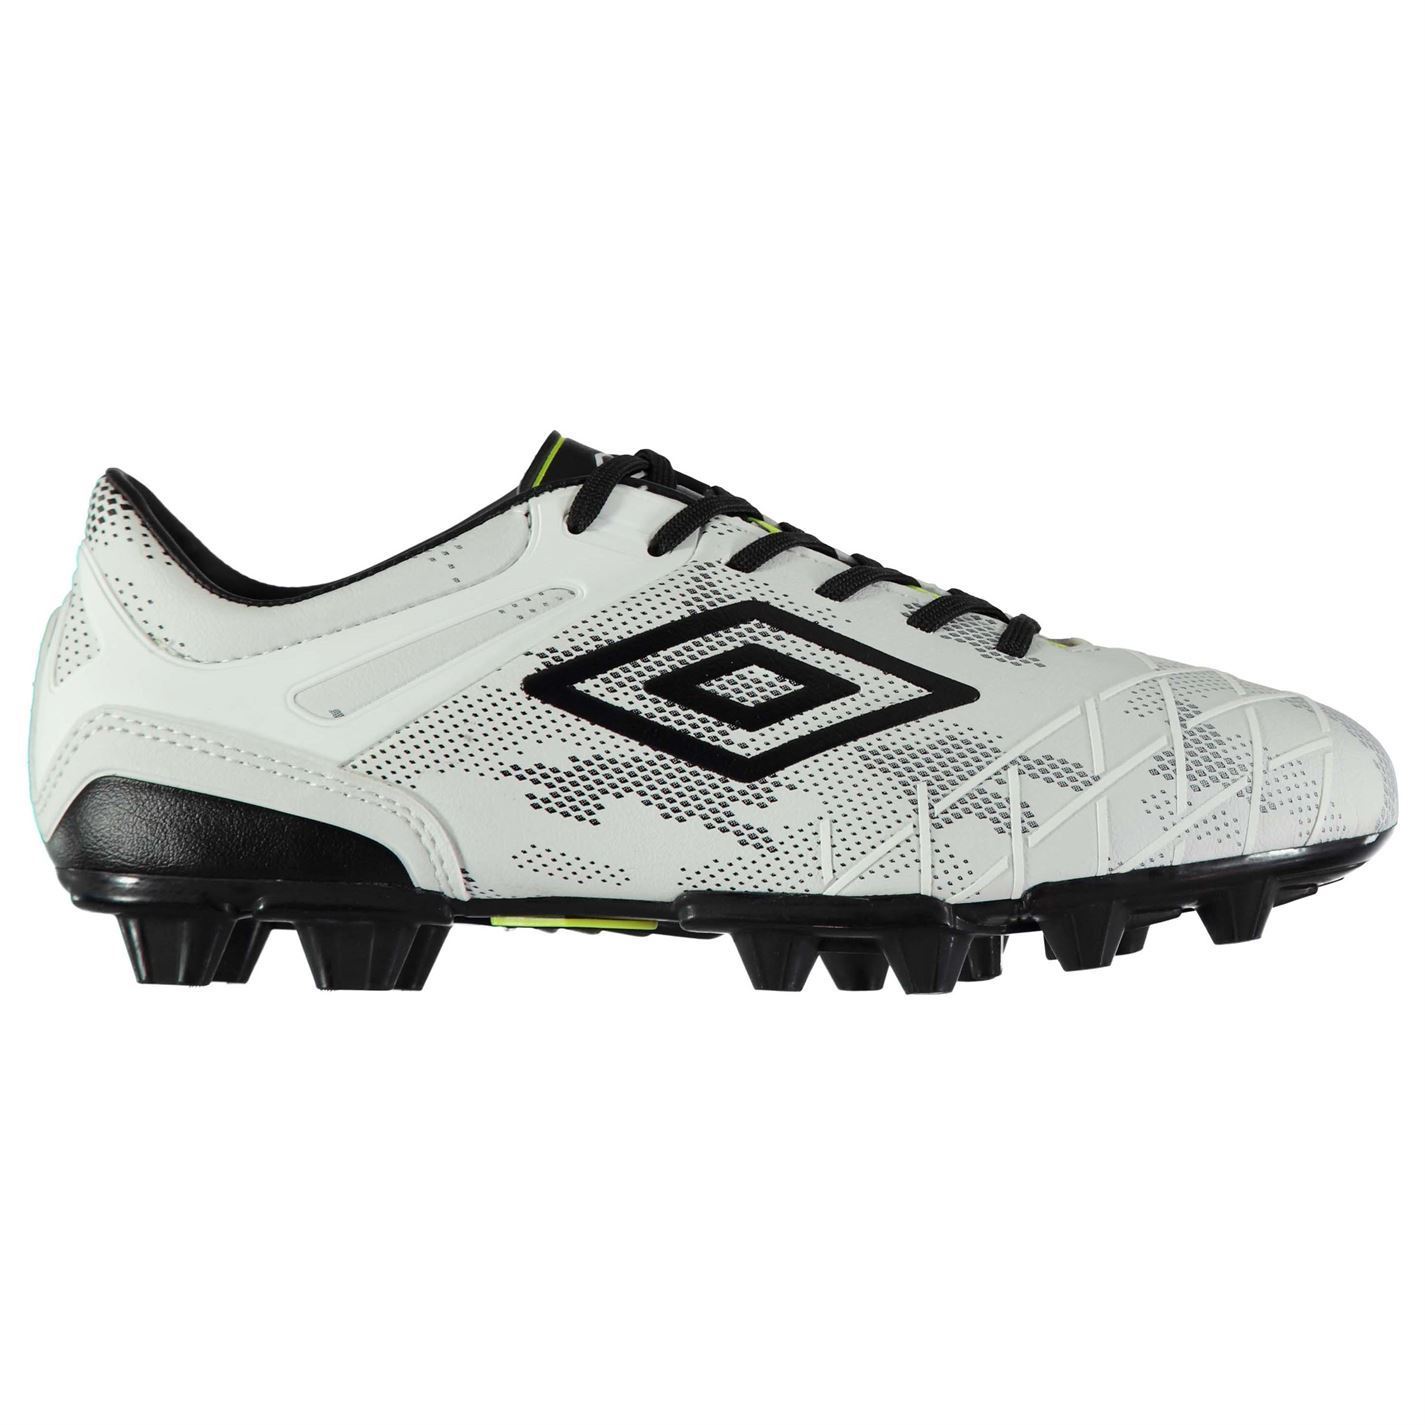 Umbro Mens UX 2.0 Premier HG Football Boots Firm Ground Lace Up Padded Ankle 8fcc2ce5466be